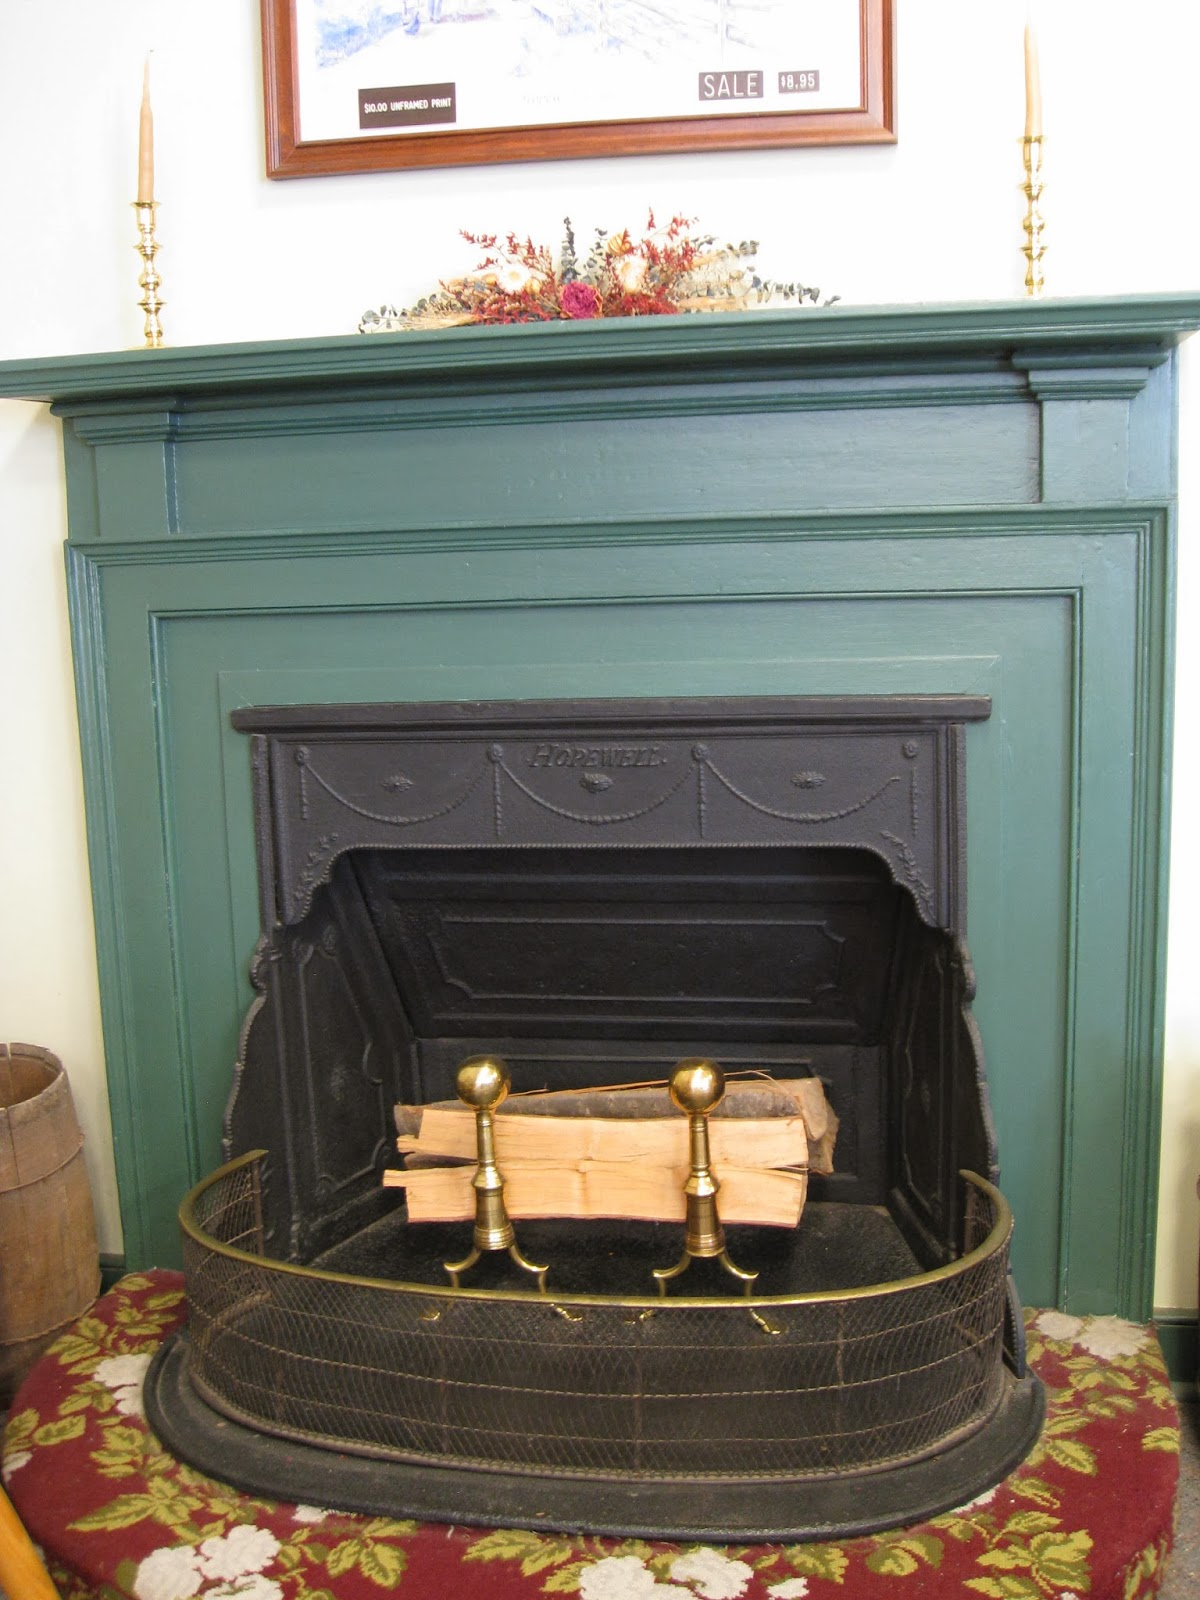 A Stove Less Ordinary: A Collection of Stoves from American Museums